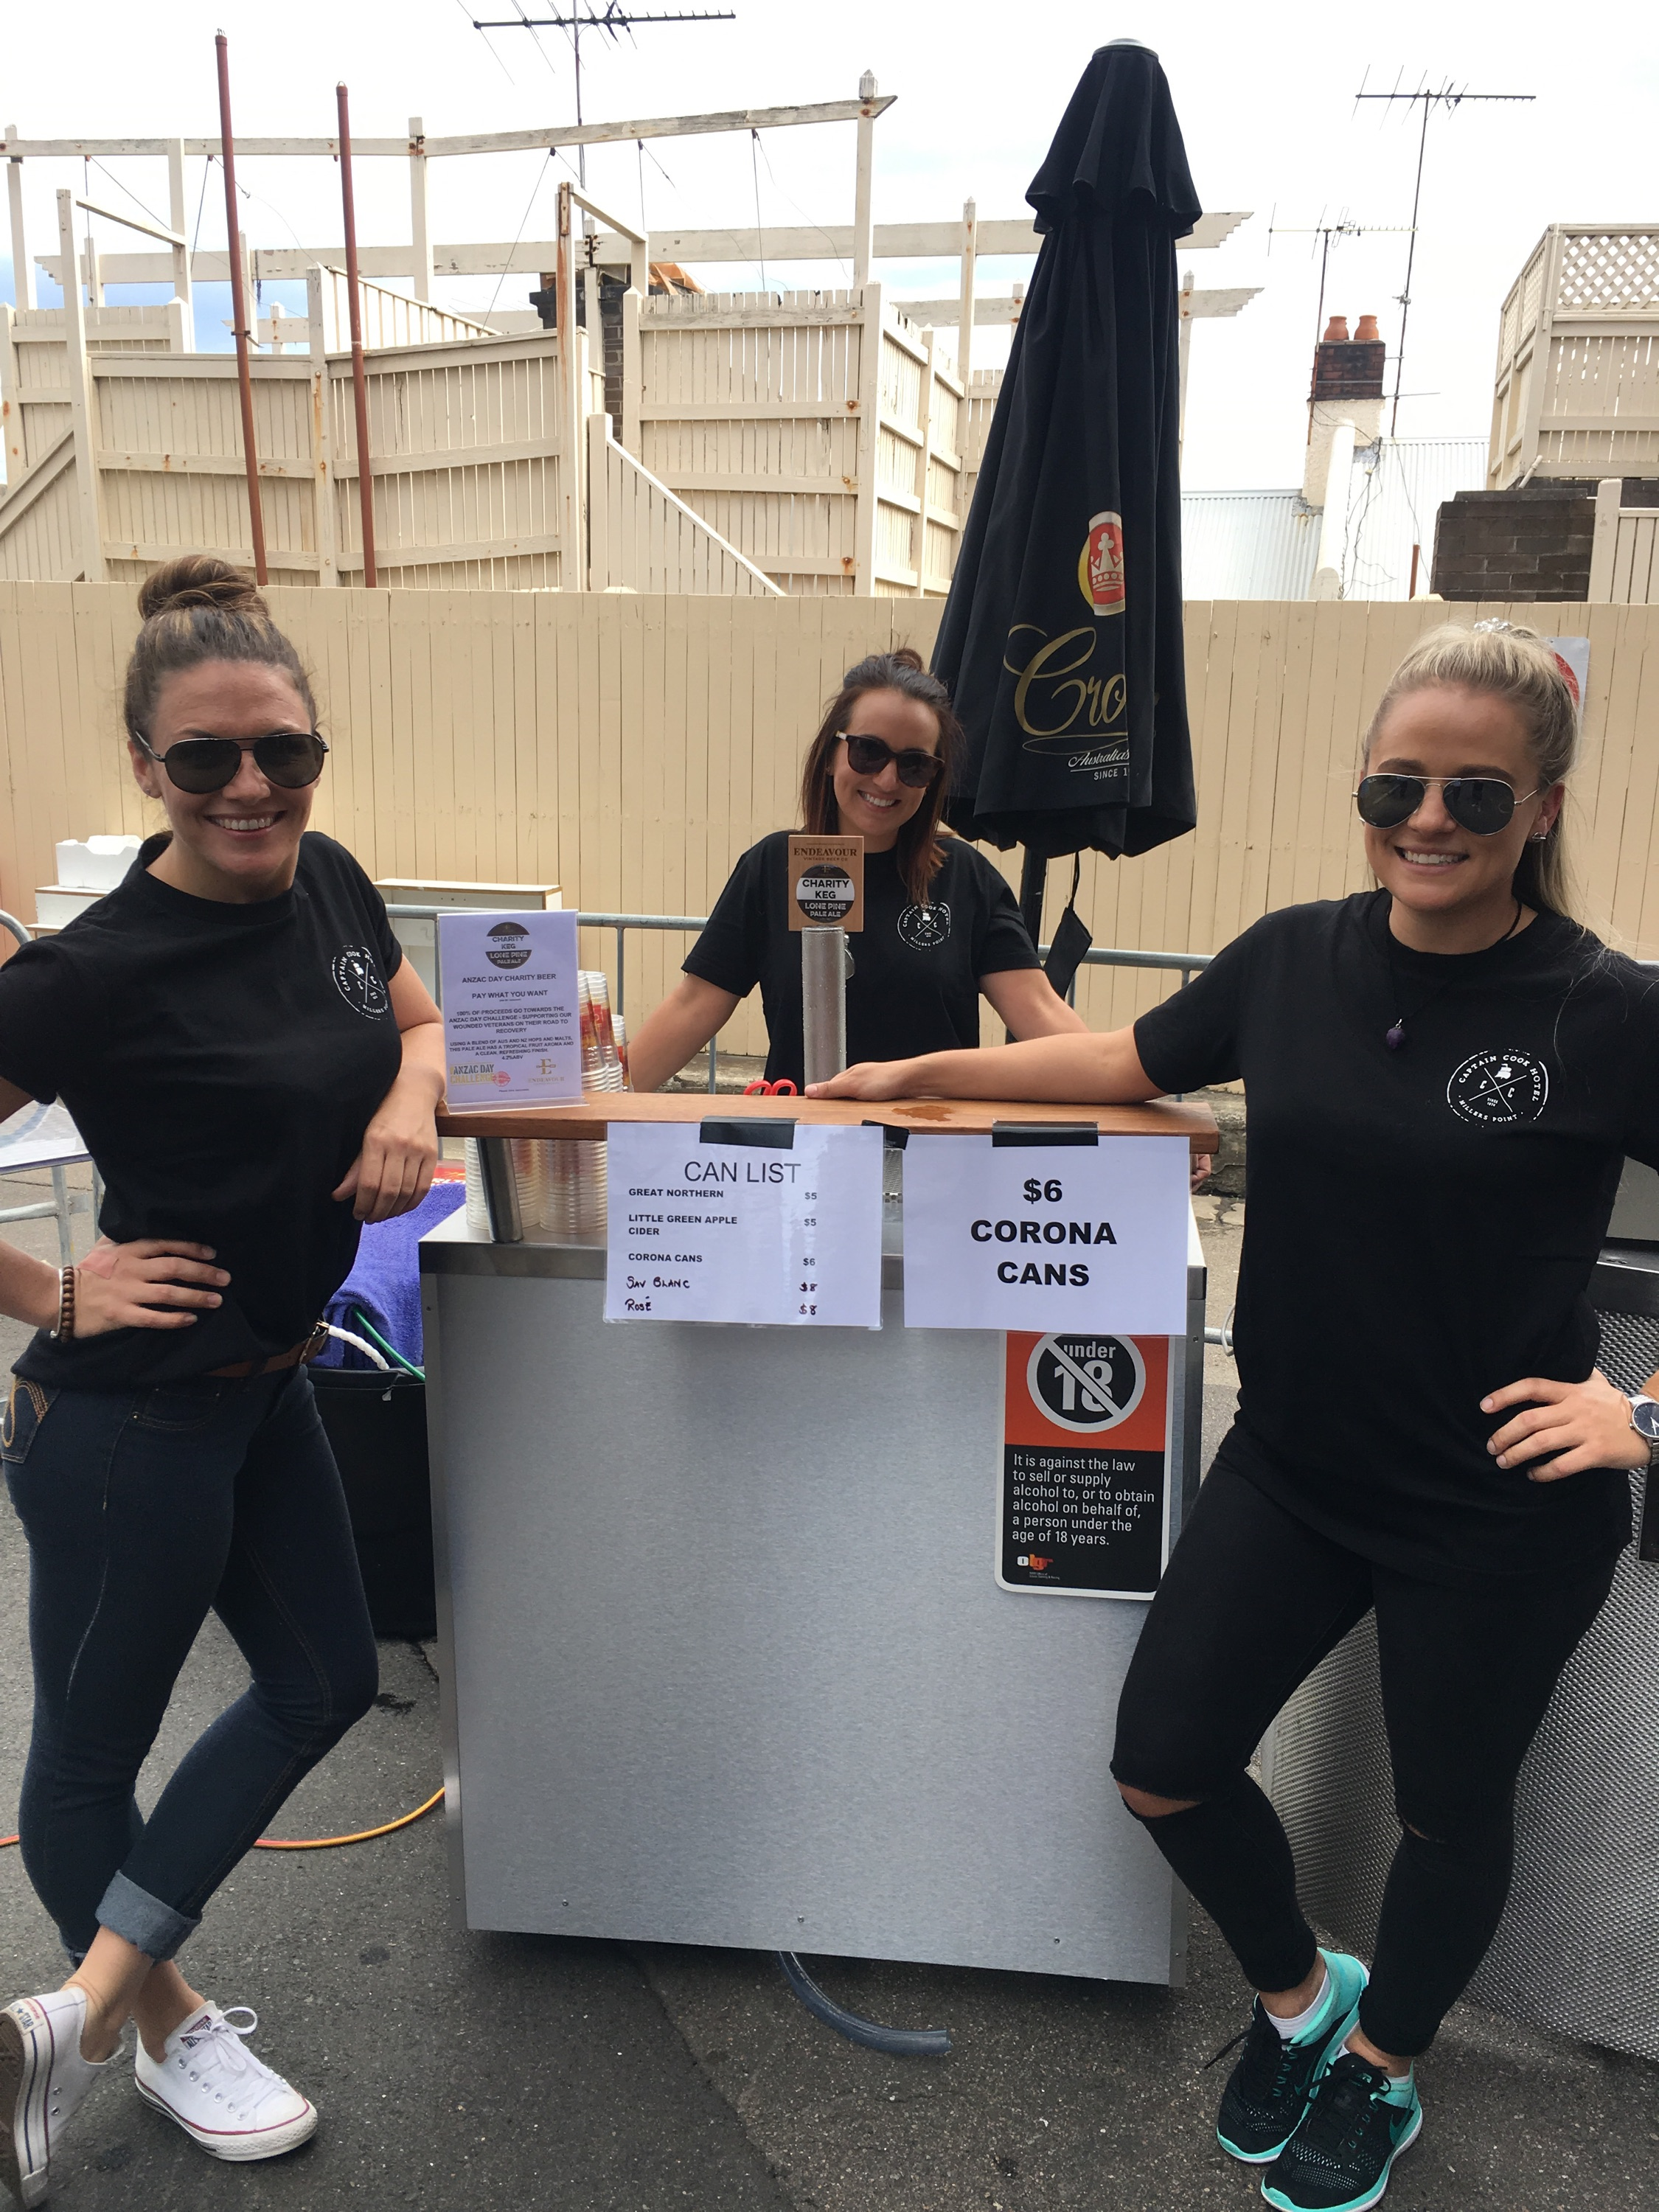 MOBILE BAR HIRE  For people in the local area we have mobile bar, mirical box,keg and glassware hire. The convenience of a pub in your own home!  Email us  for details.